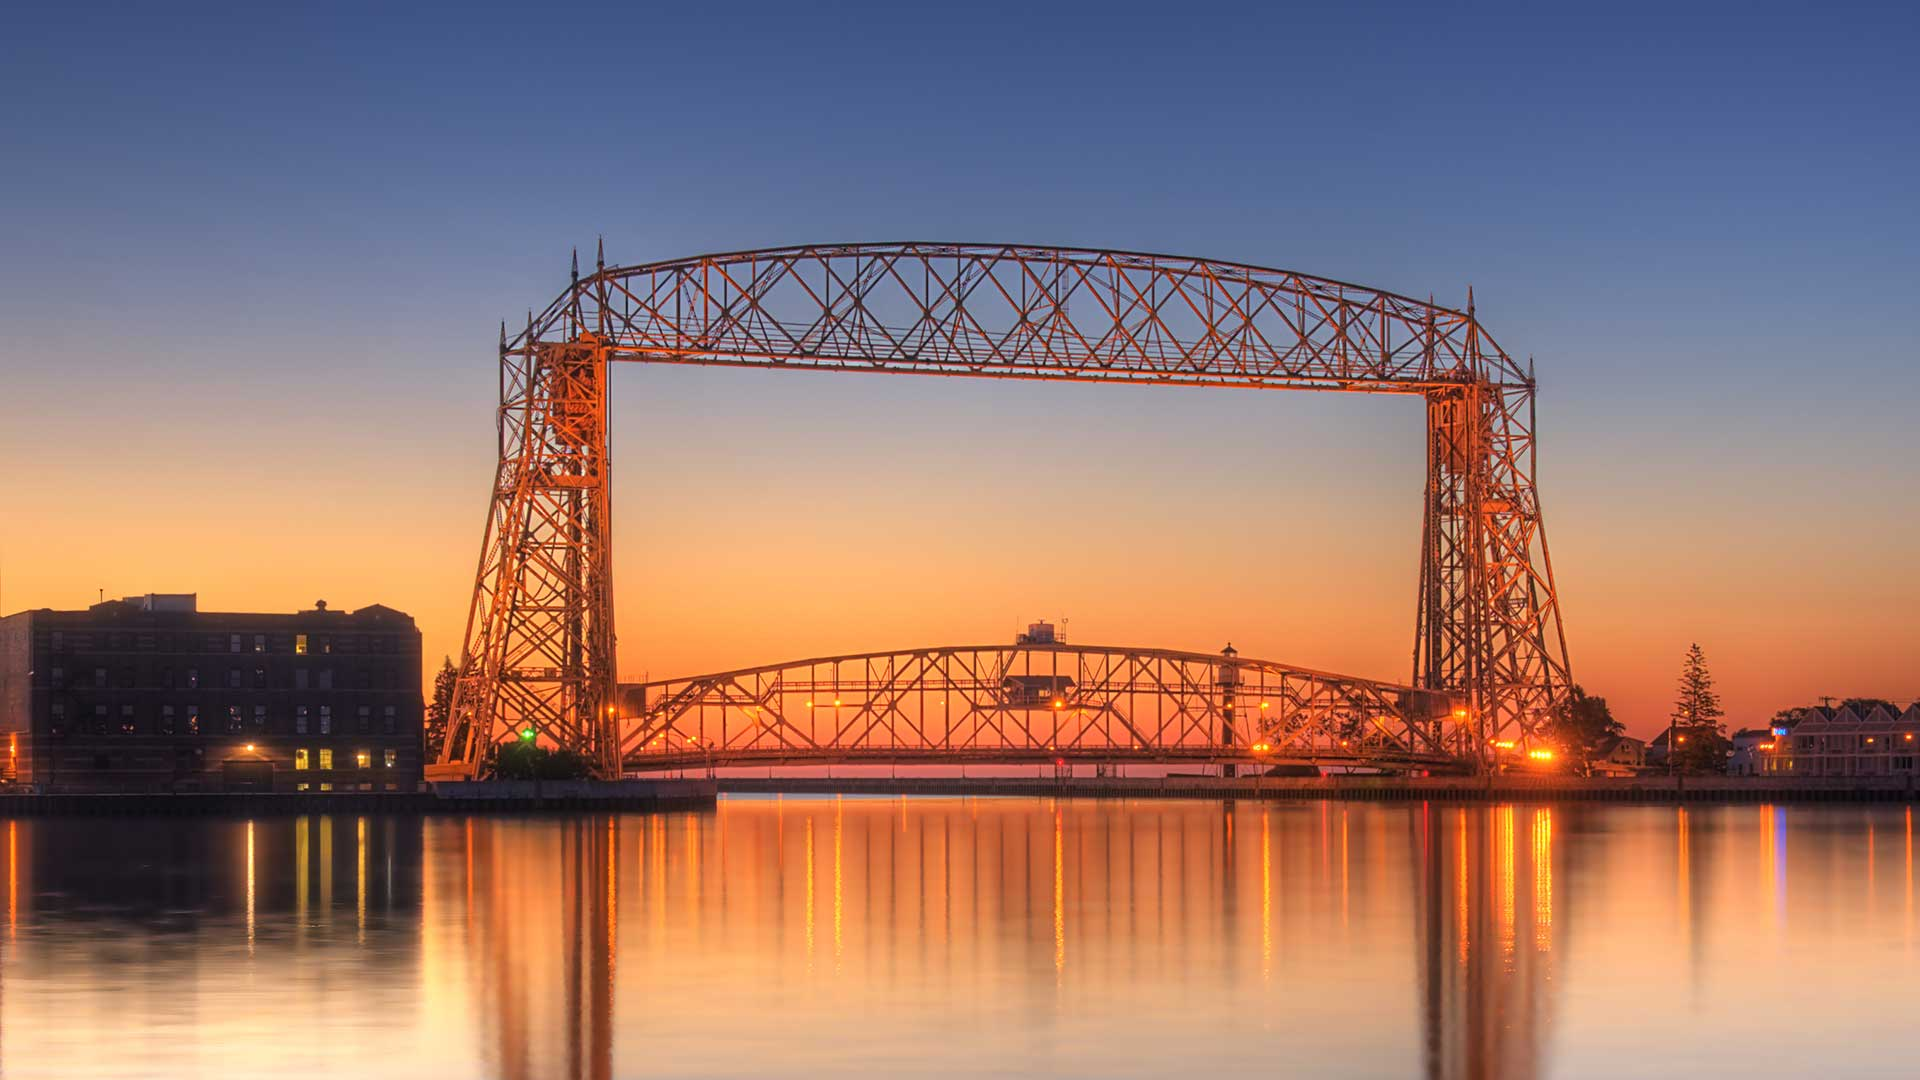 Panorama to illustrate dating in duluth